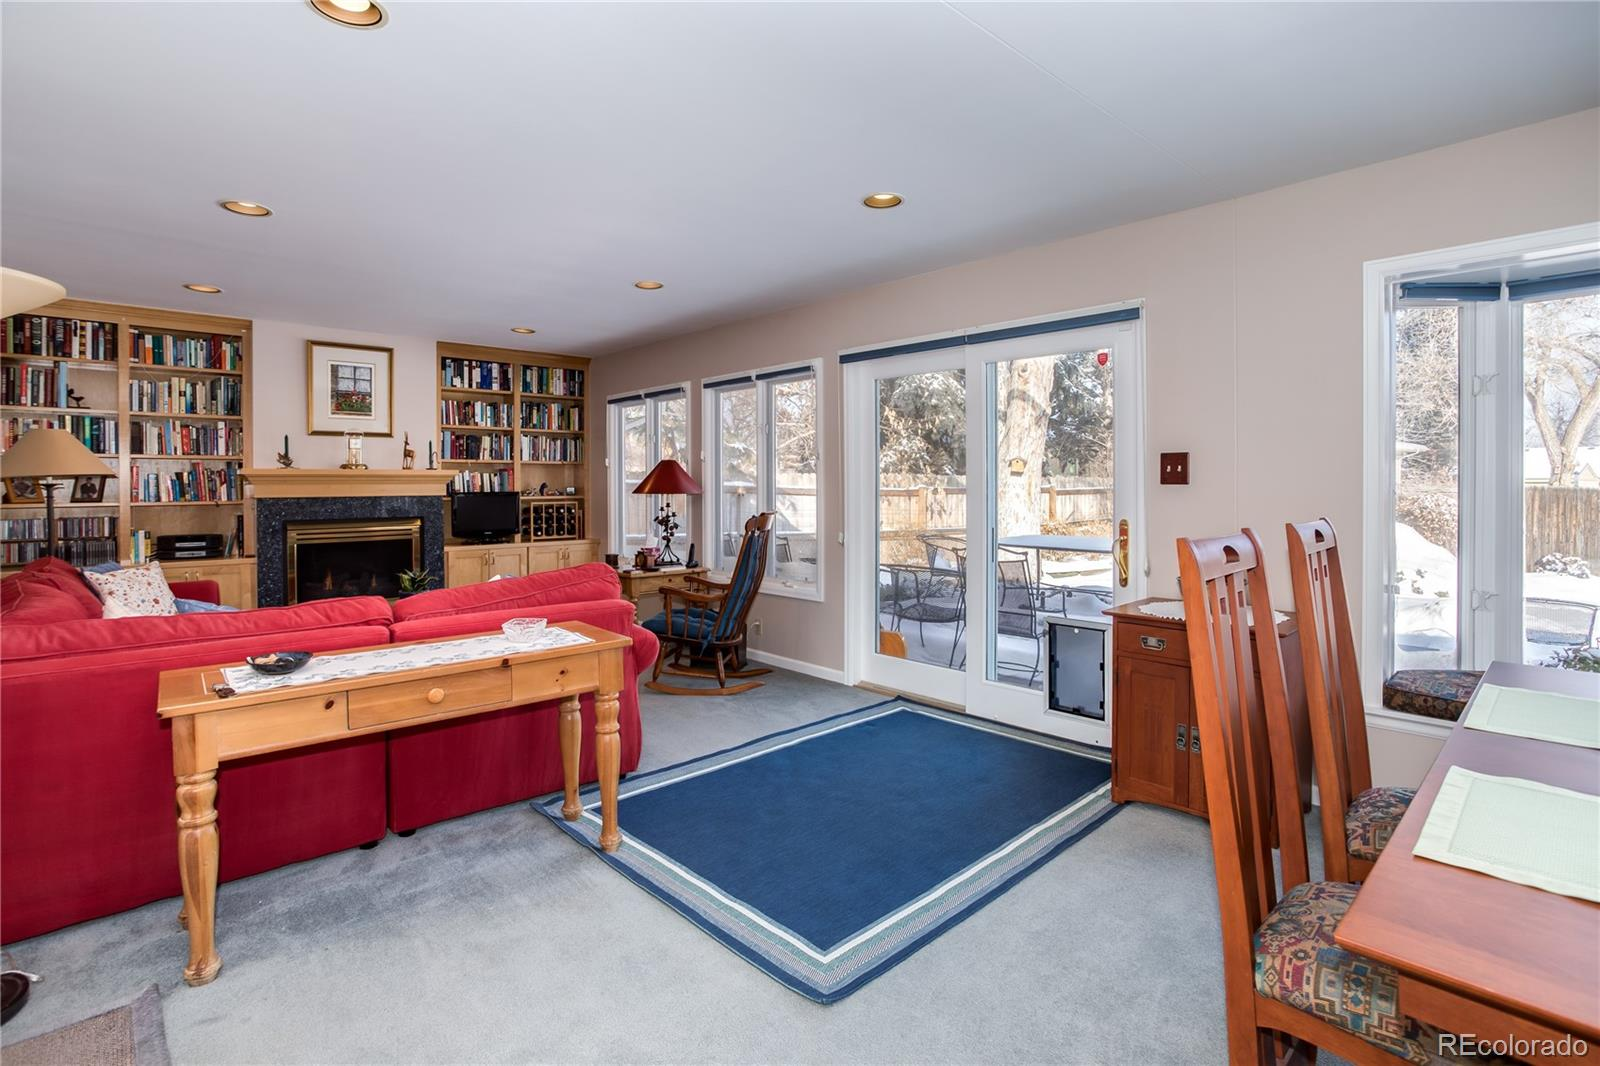 MLS# 3004507 - 6 - 6551 E Brown Place, Denver, CO 80224